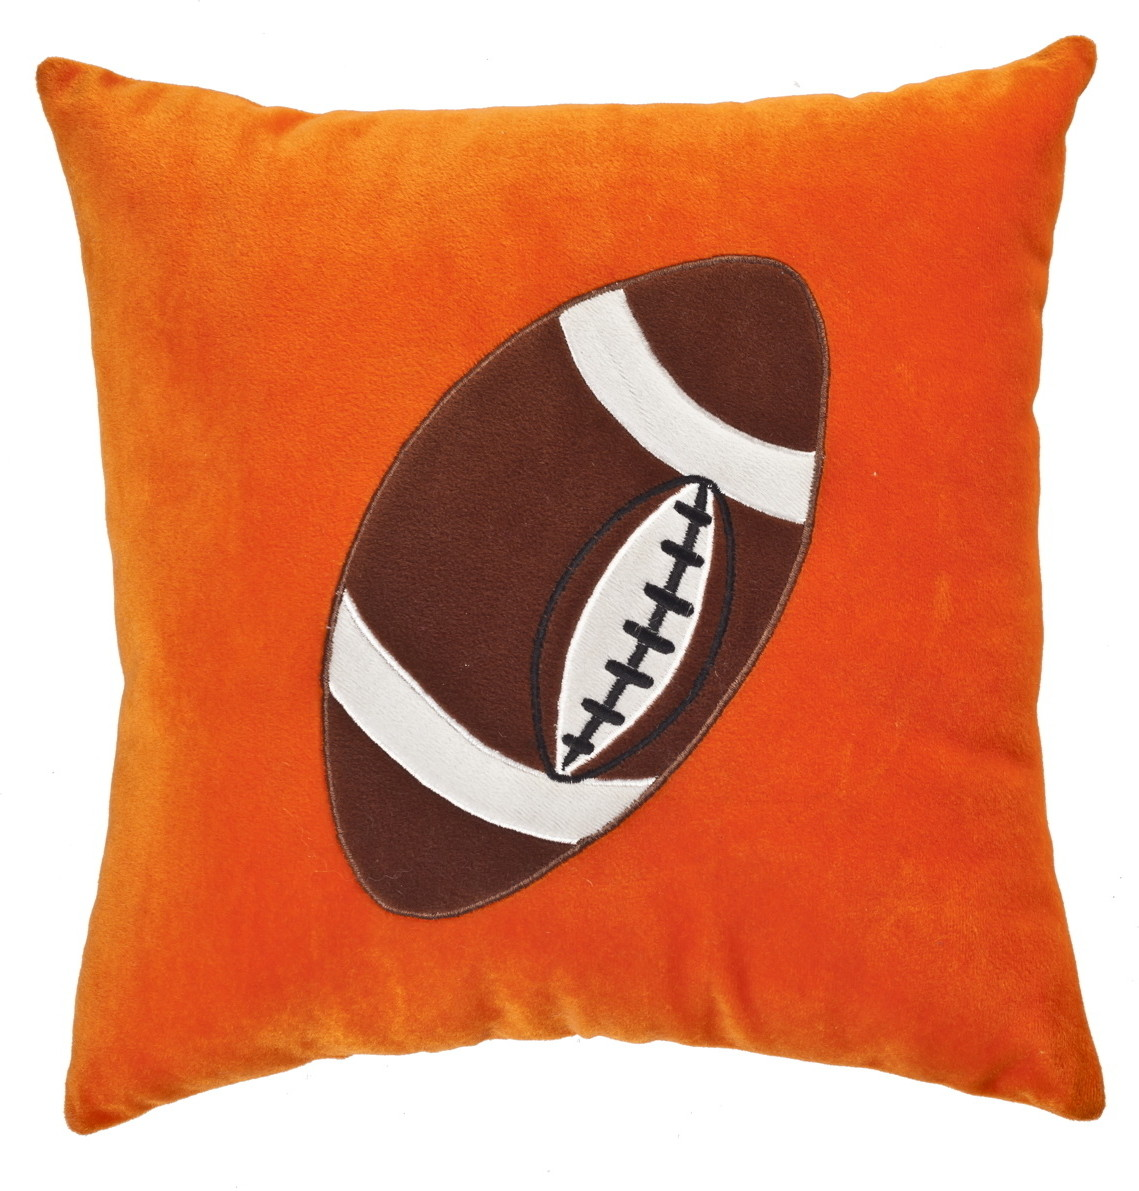 Cushion And Toys Solid Decorative Cushion